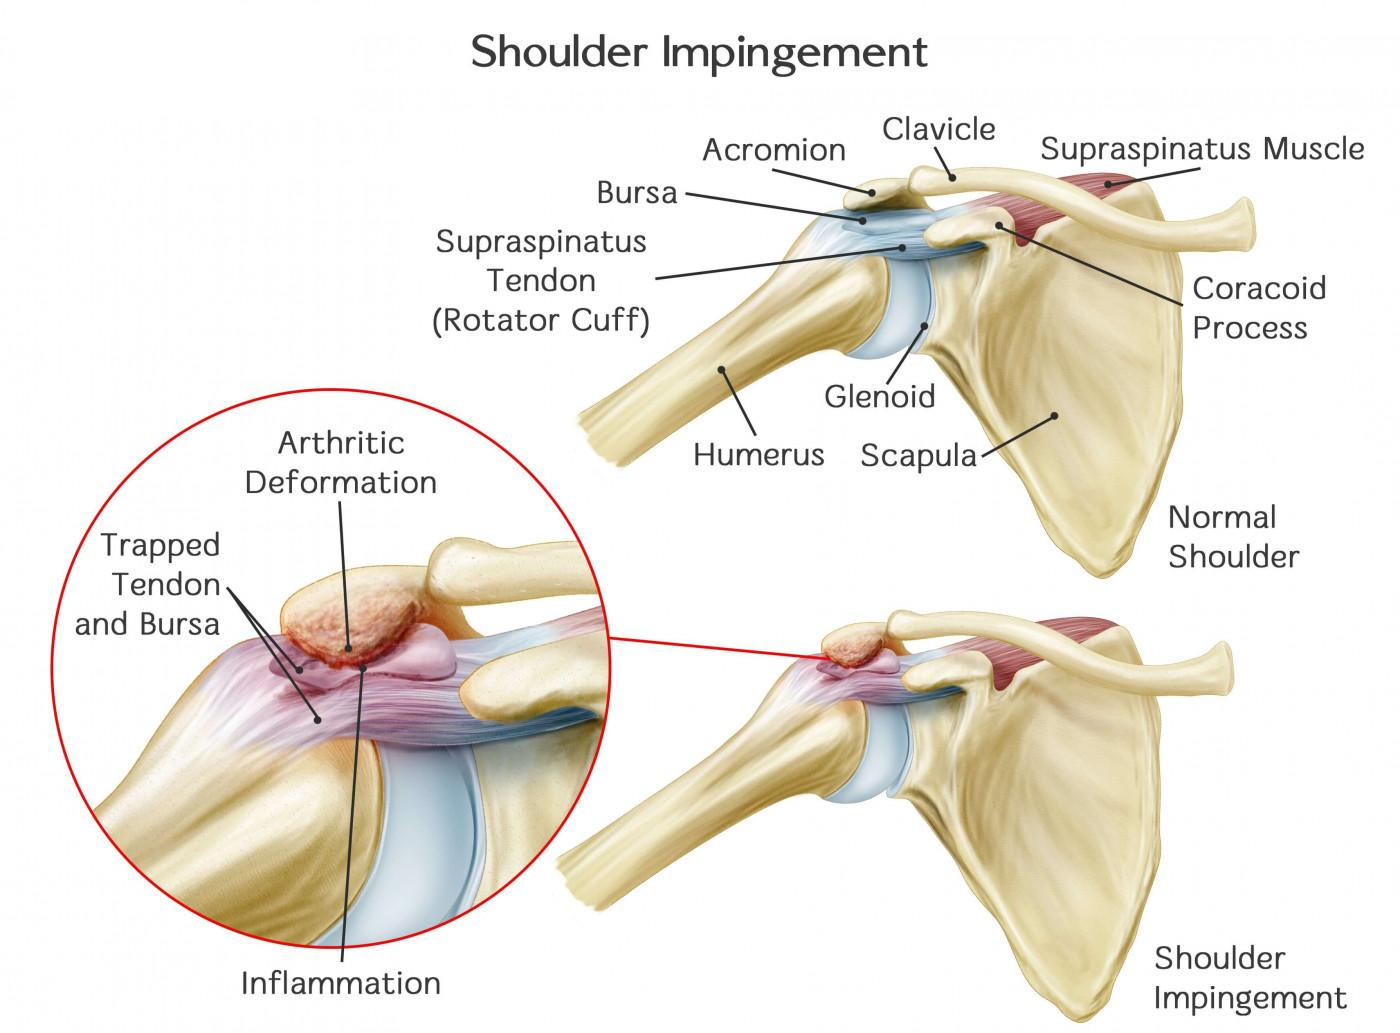 Physical Therapists Guide To Shoulder Impingement